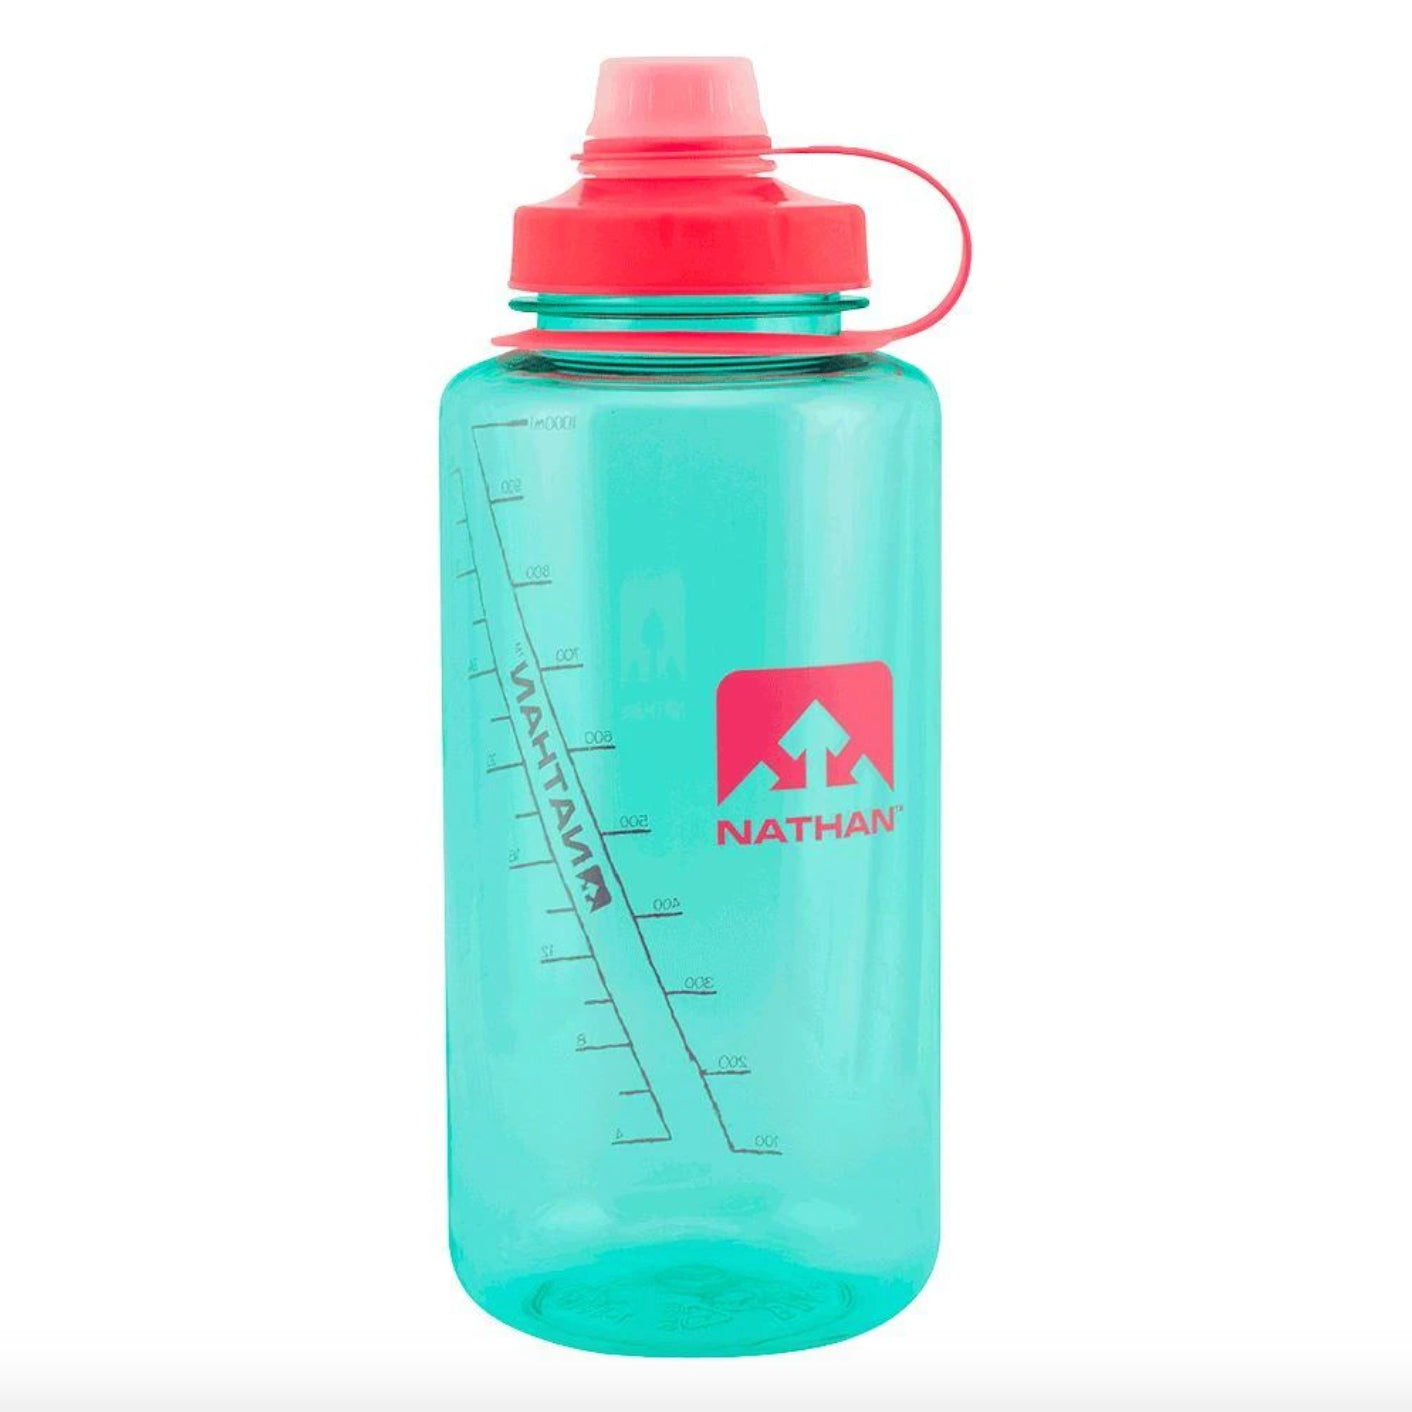 nathan bigshot 1L hydration bottle in blue light